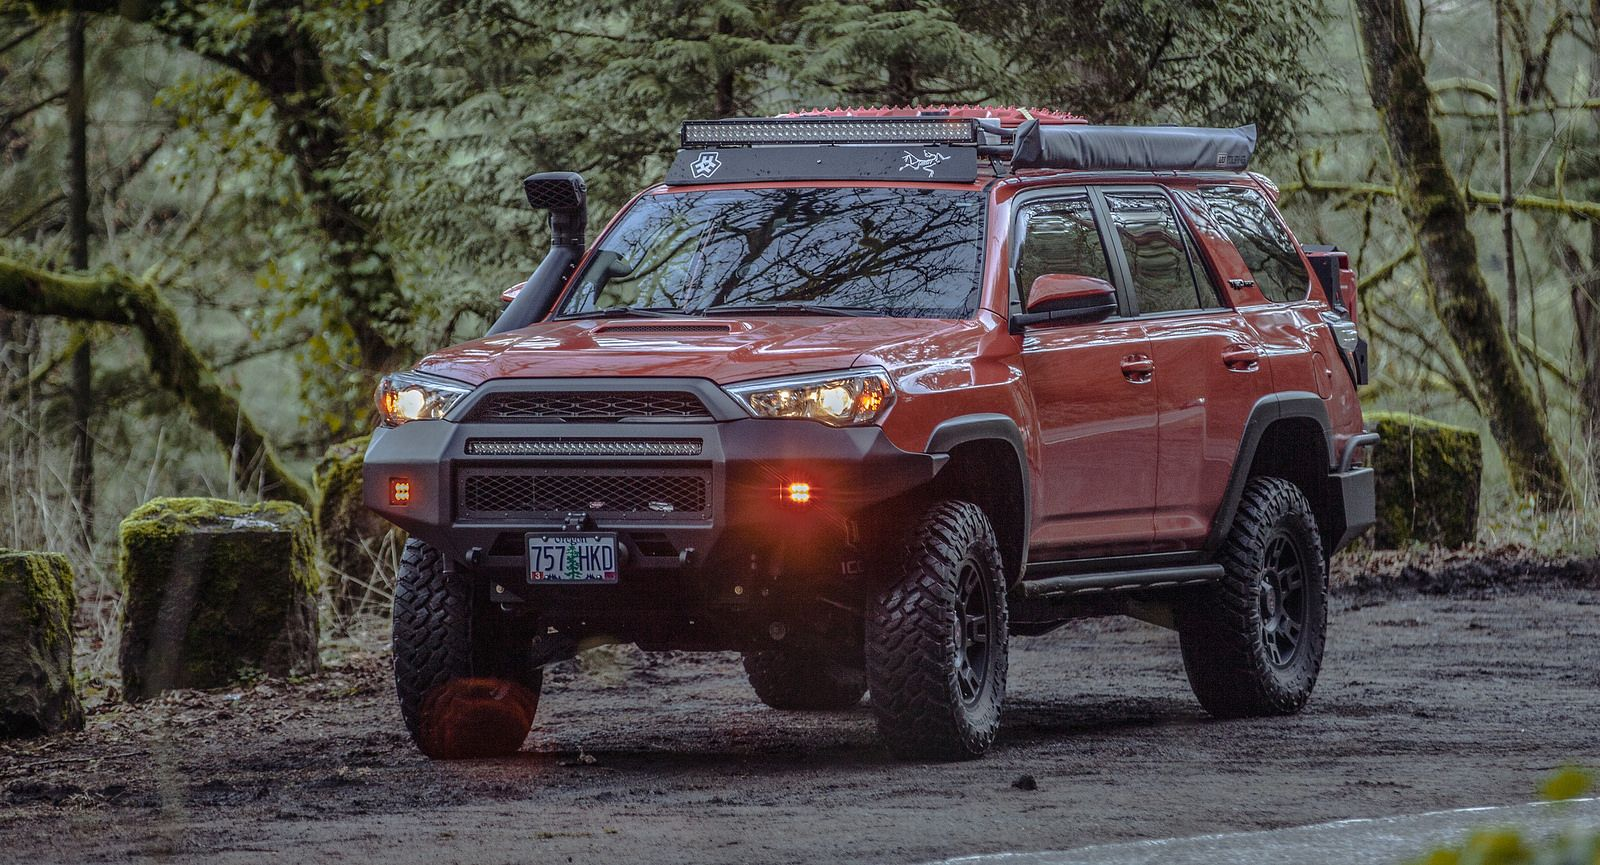 2017 4runner trd pro page 2 toyota 4runner forum largest 4runner - 5th Gen T4r Picture Gallery Page 334 Toyota 4runner Forum Largest 4runner Forum